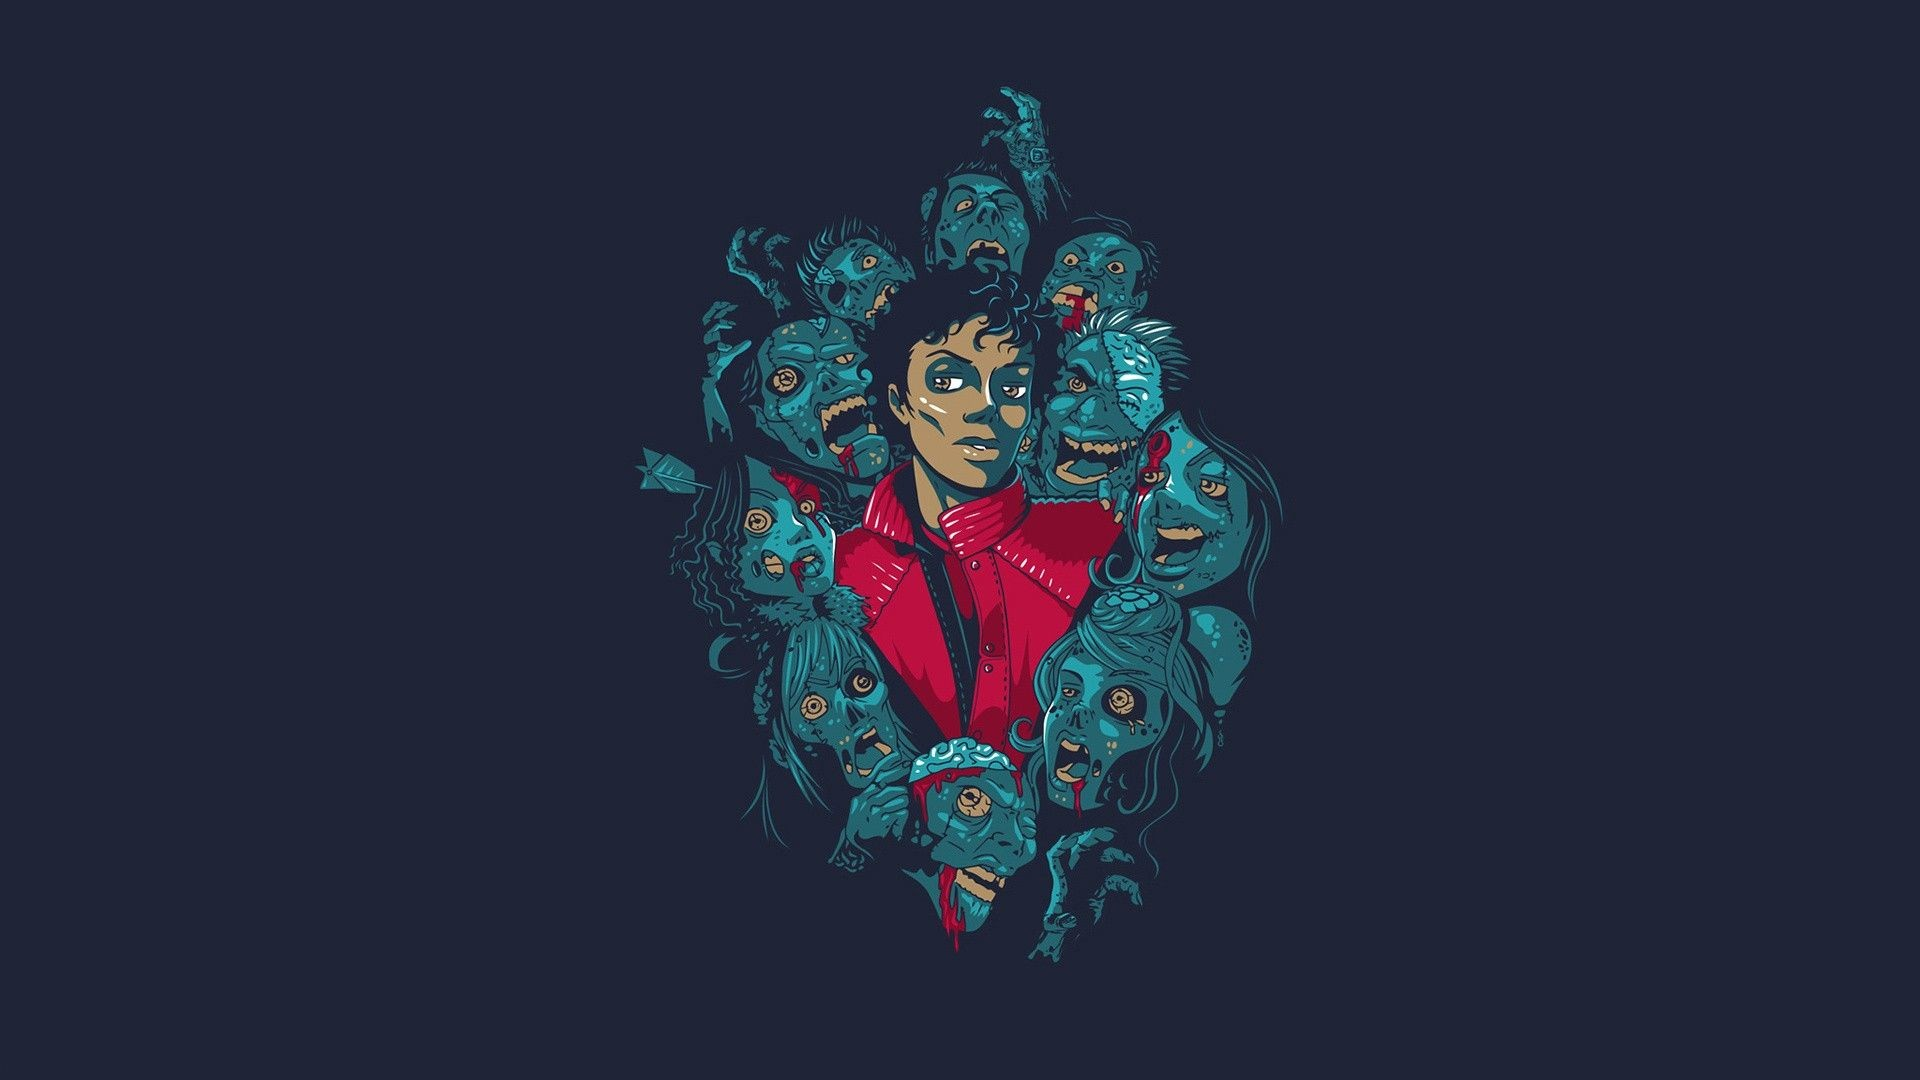 1920x1080 Michael Jackson Thriller Wallpapers